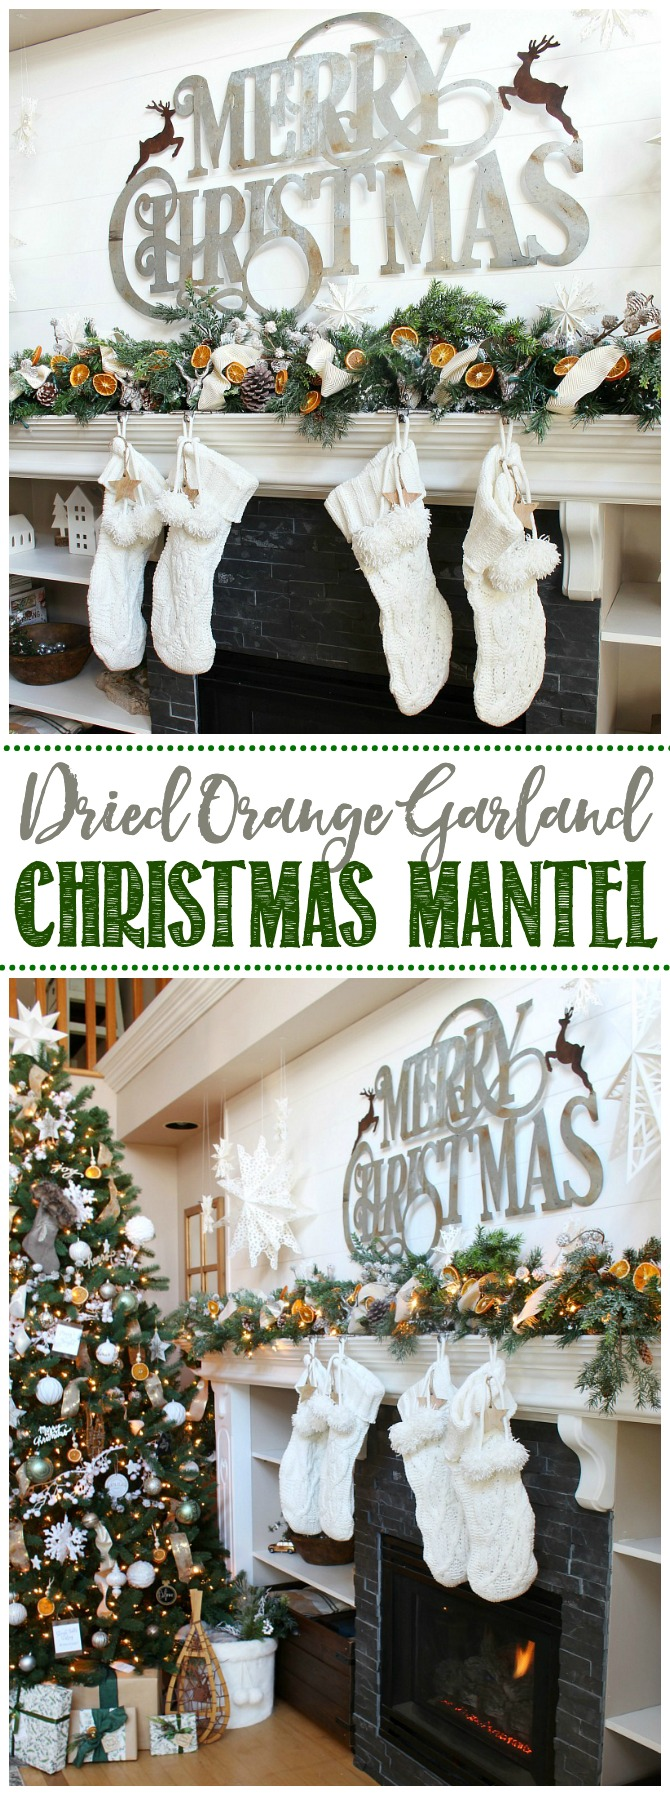 Christmas mantel decor with dried orange garland.